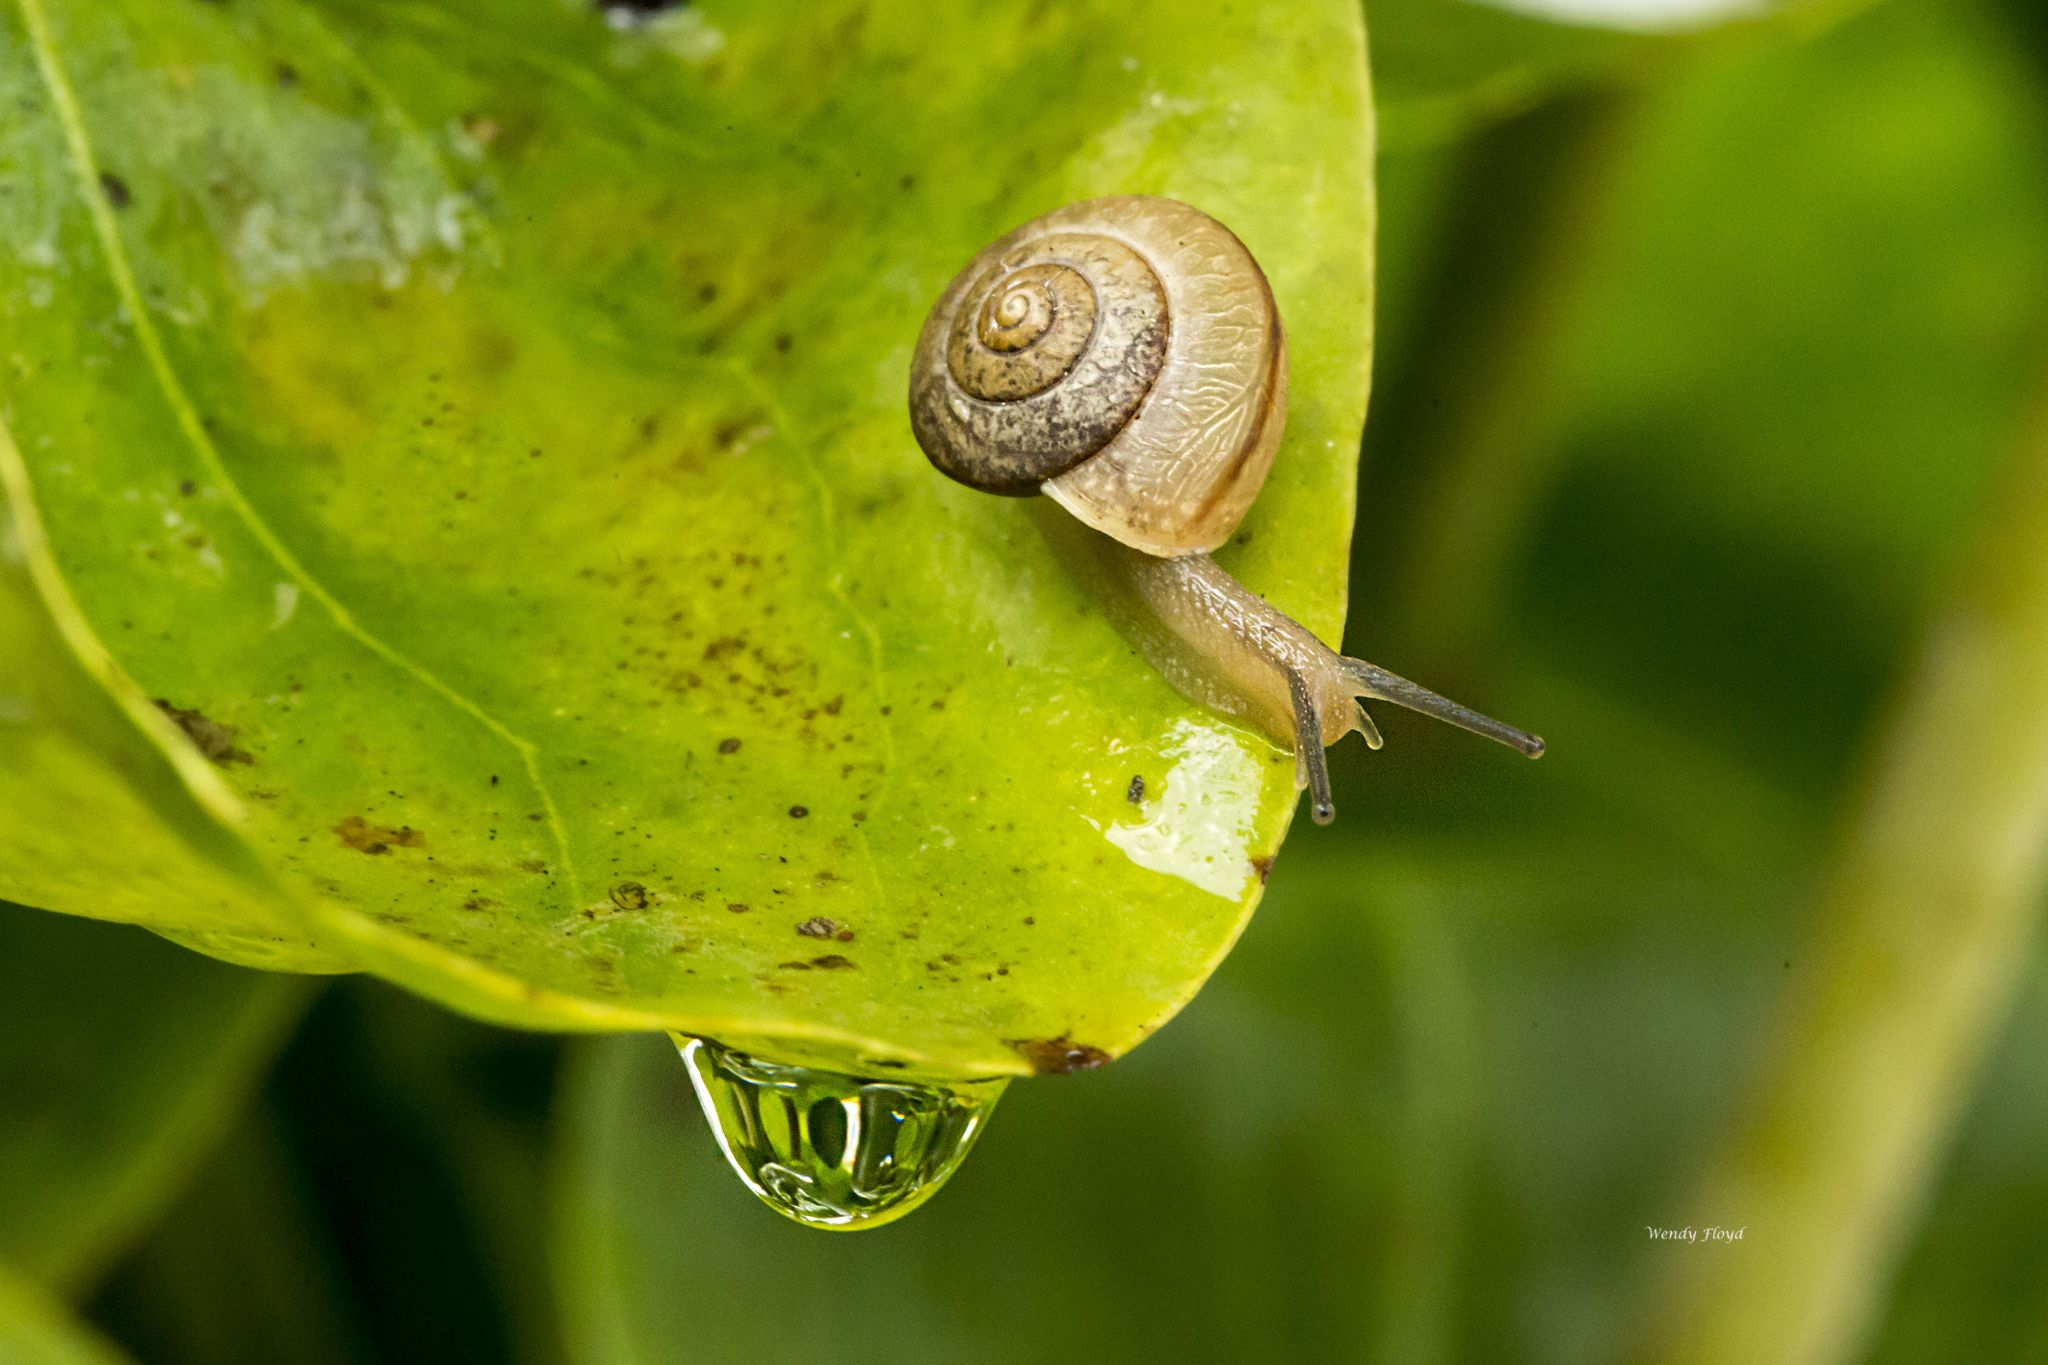 Snail and water droplet by WendyFloyd1